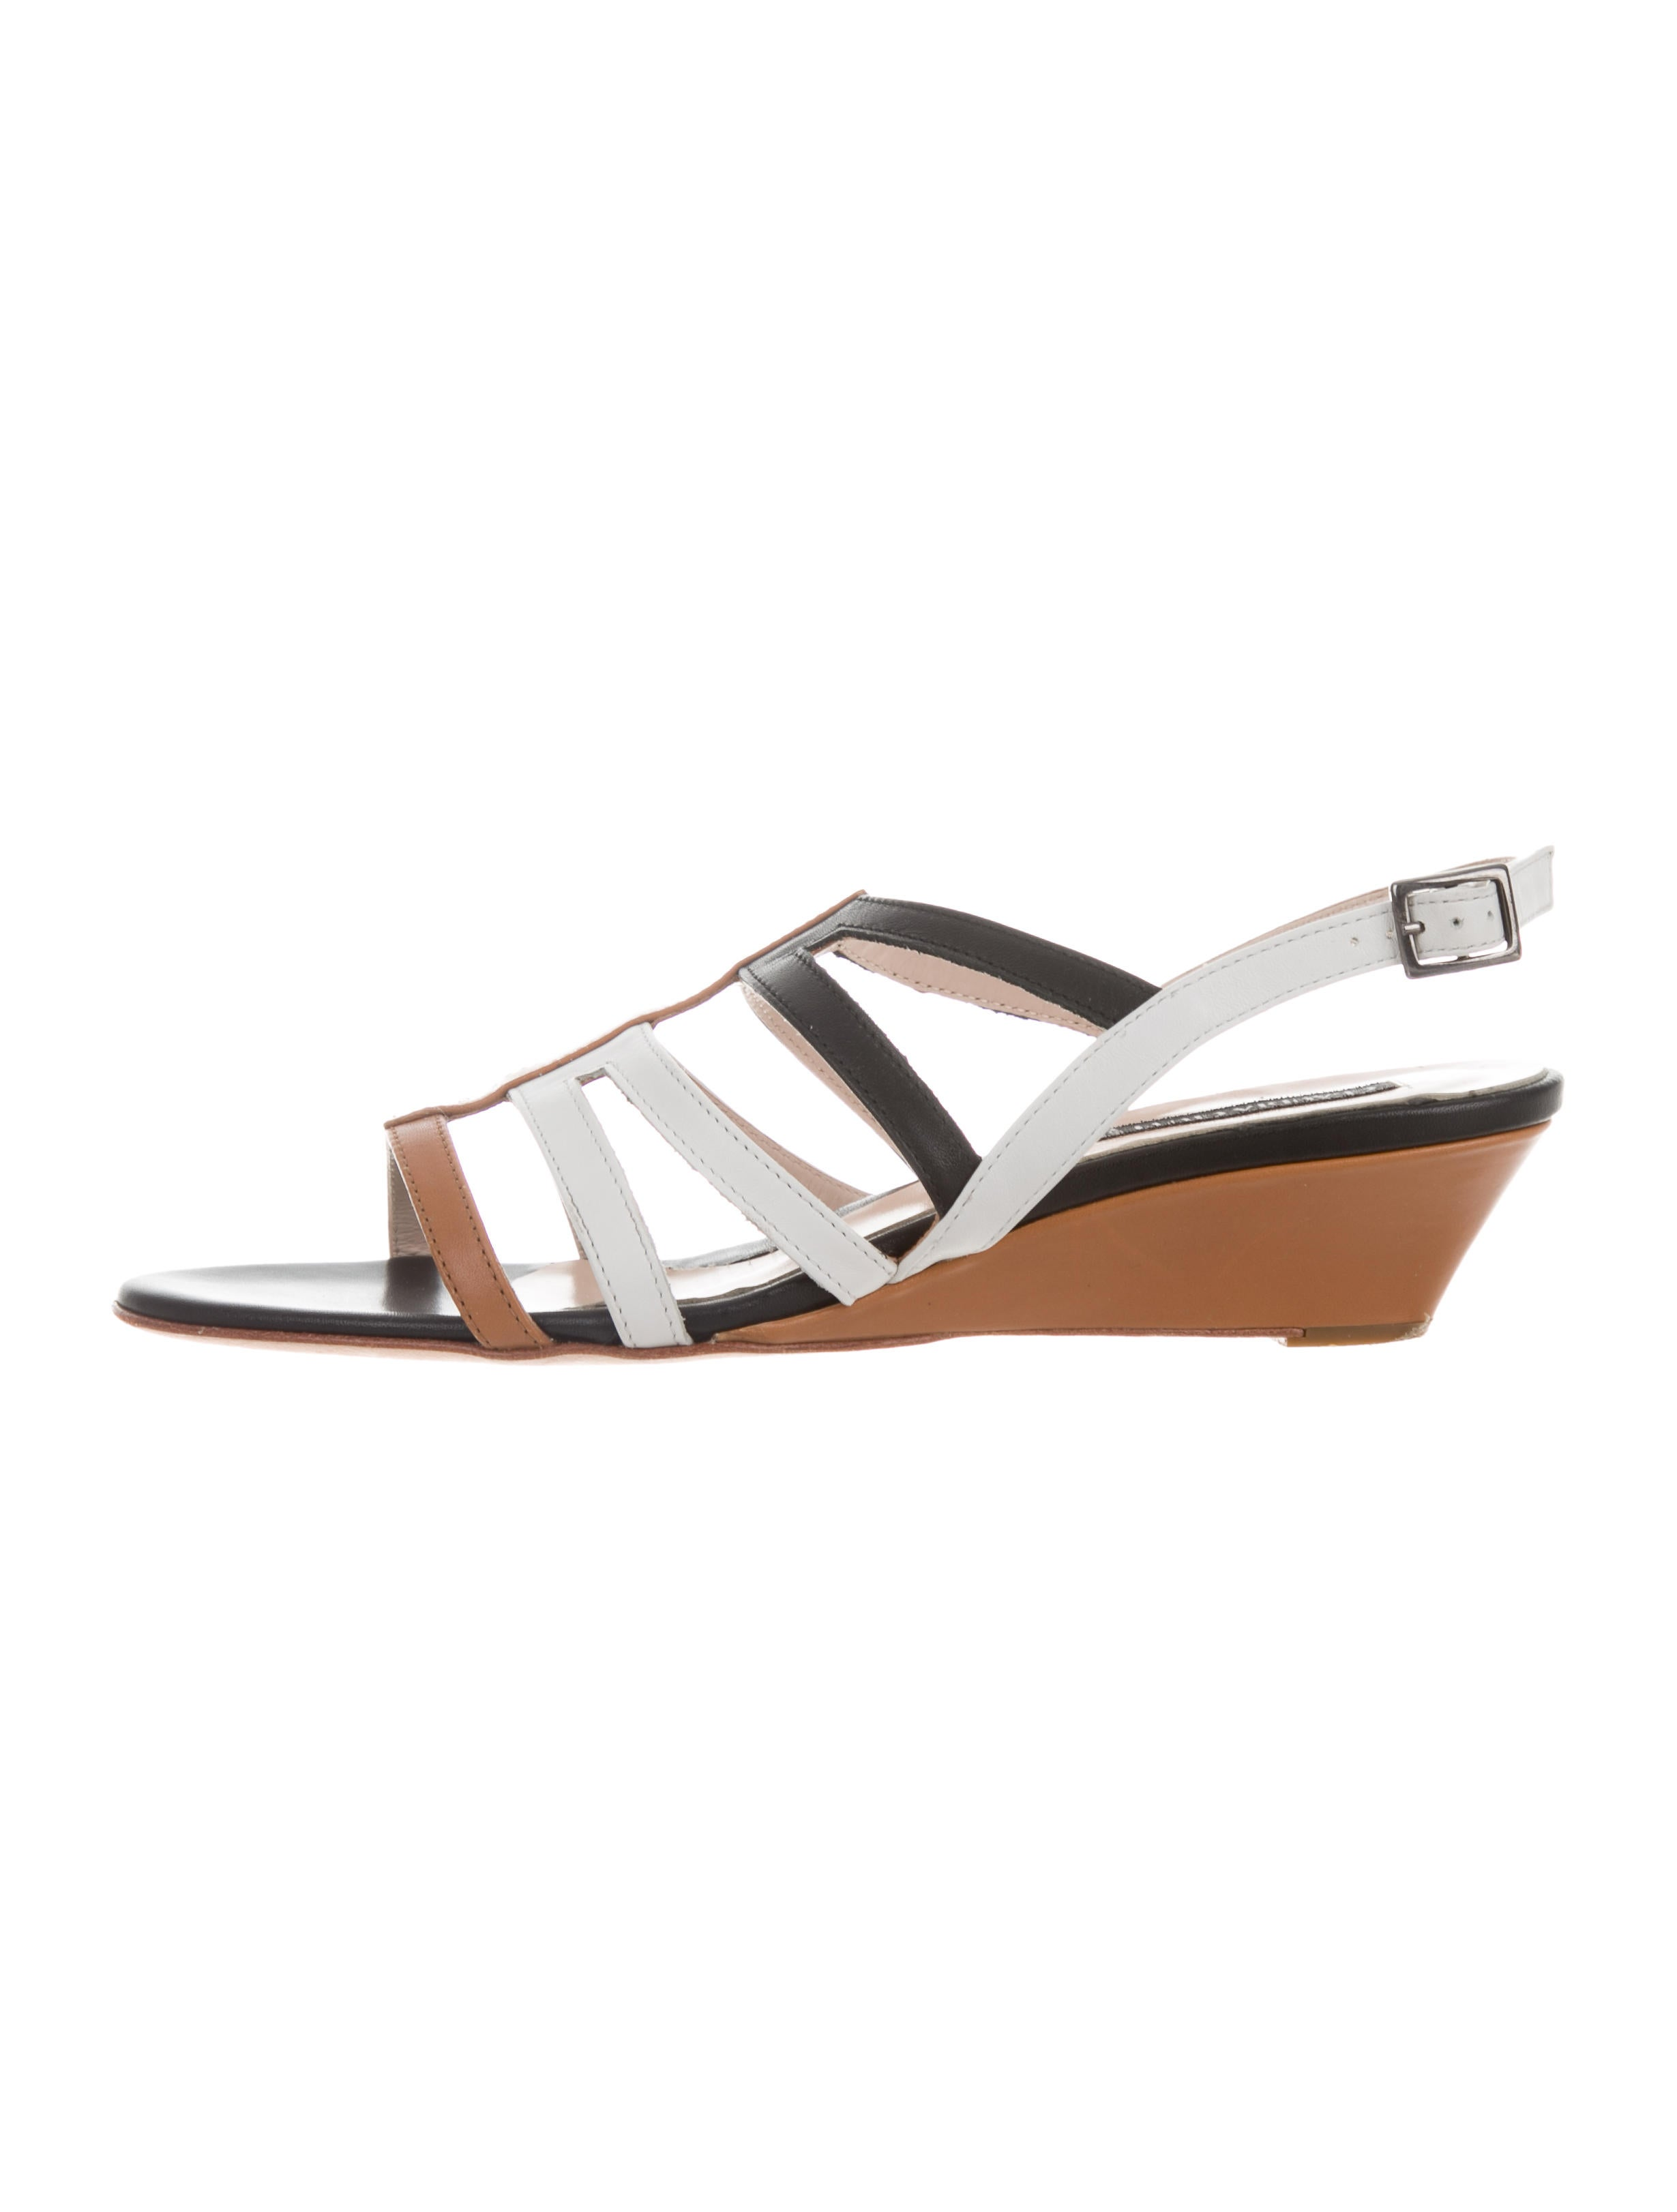 cheap sale wholesale price Claudio Cutuli Leather Ankle Strap Sandals top quality sale online footlocker pictures cheap price Of7Wg2U